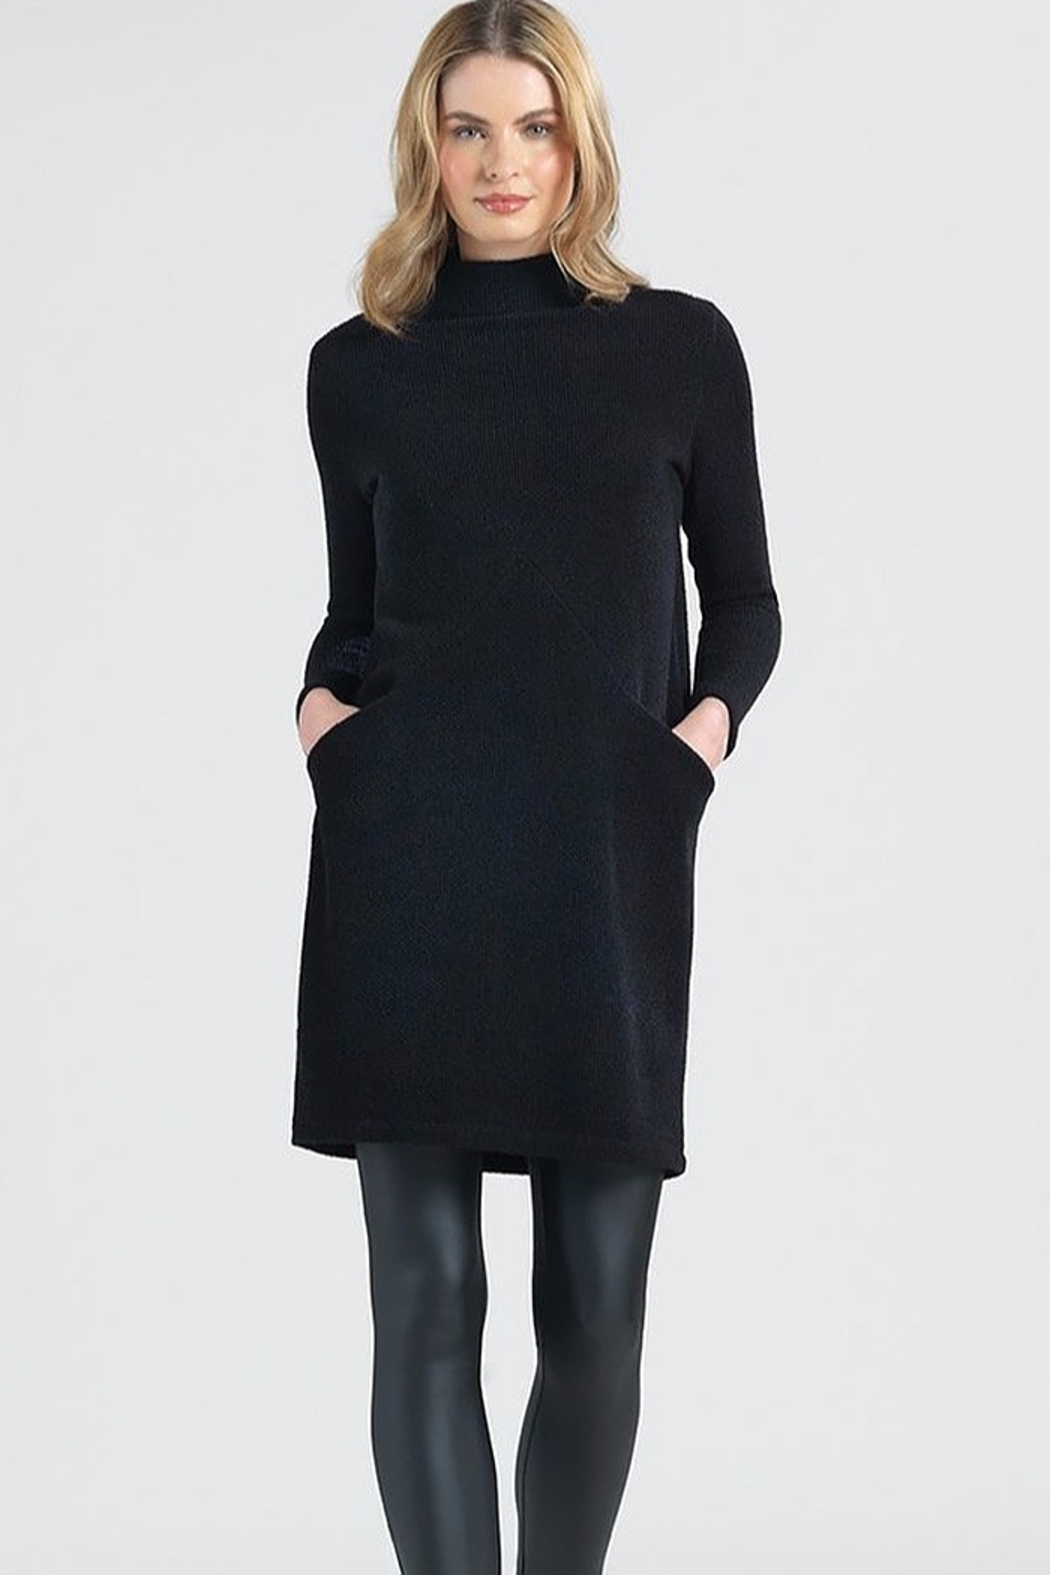 Clara Sunwoo Funnel Neck Knit Dress - Main Image